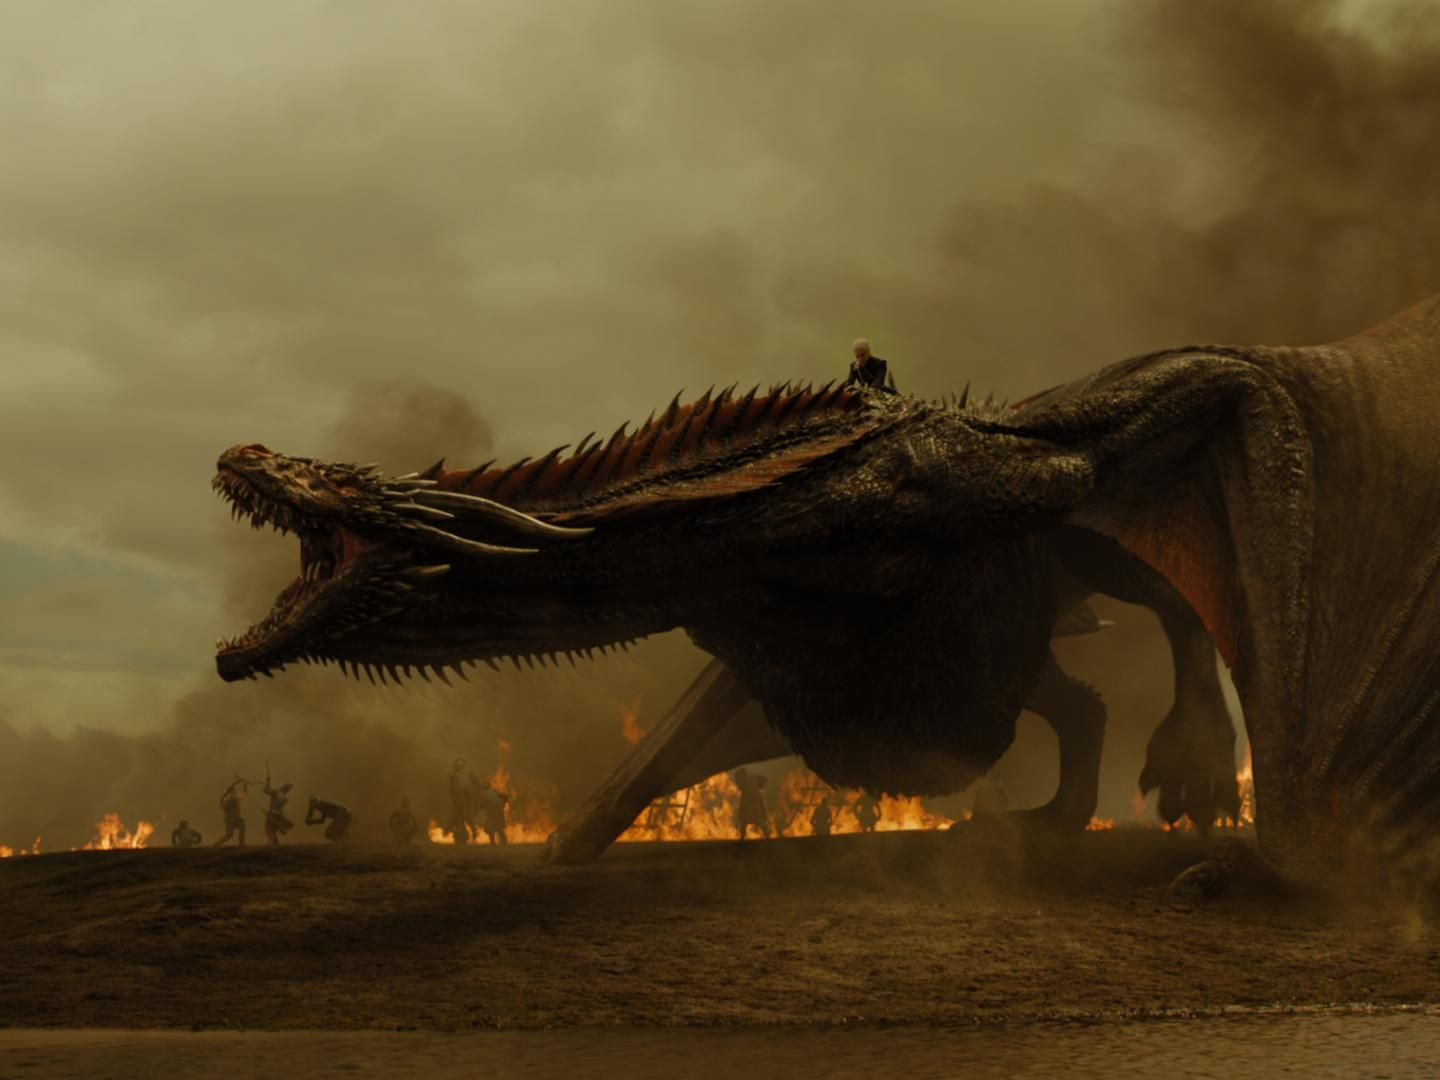 Why Did Drogon Destroy the Iron Throne in the 'Game of Thrones' Finale?